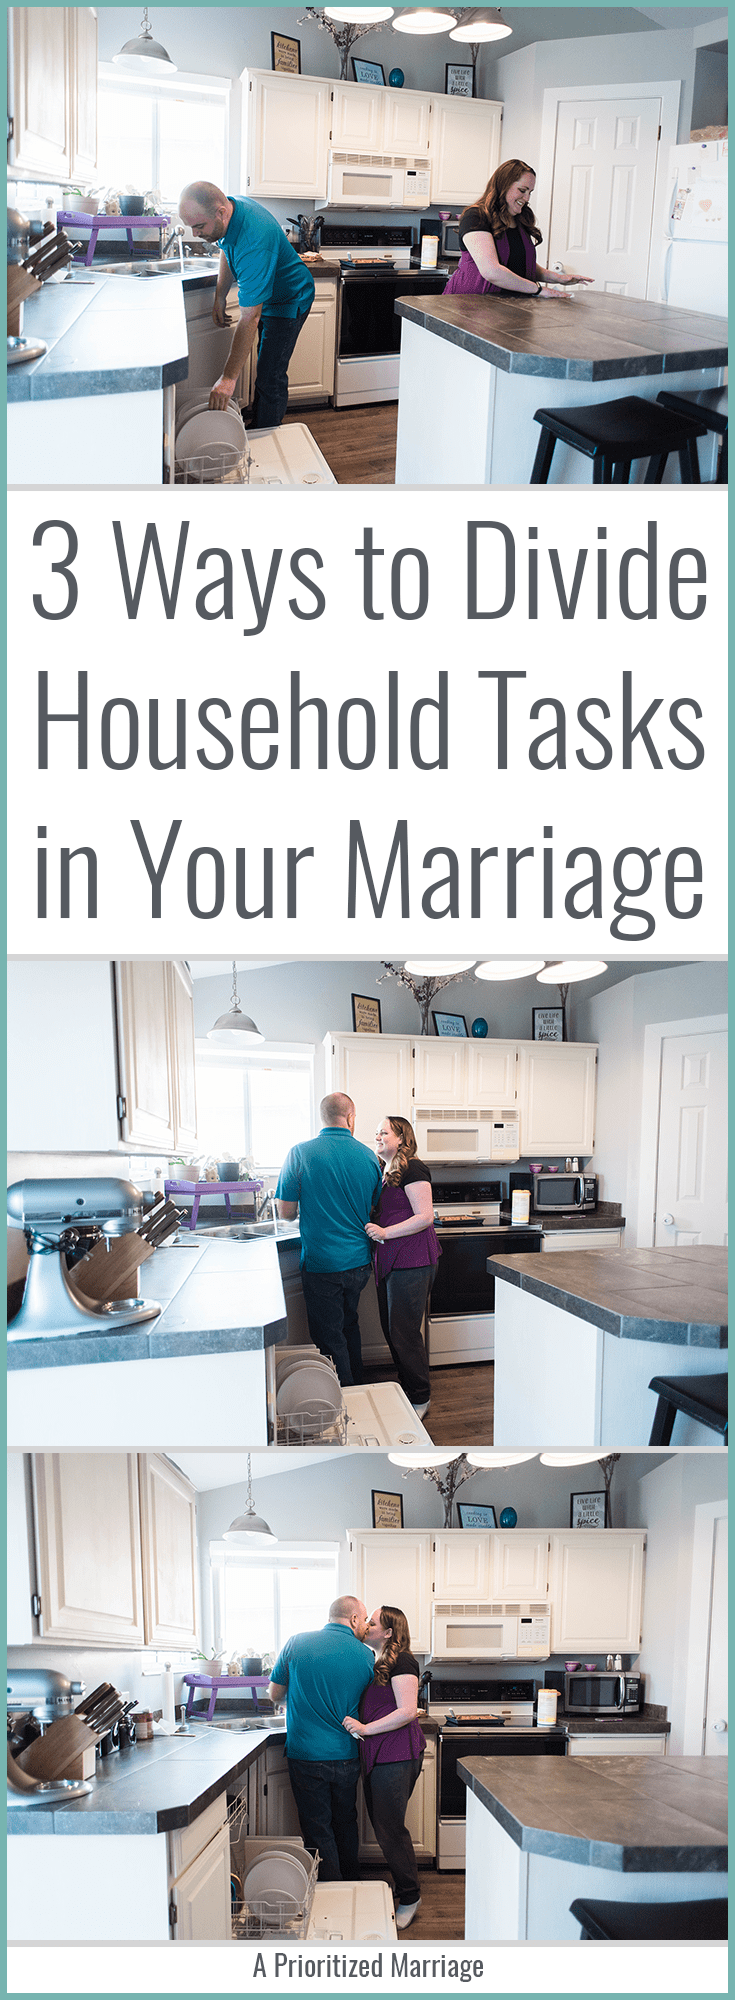 Household responsibilities can become a dividing factor for couples. Here are three ways you can tackle chores together and strengthen your marriage instead.